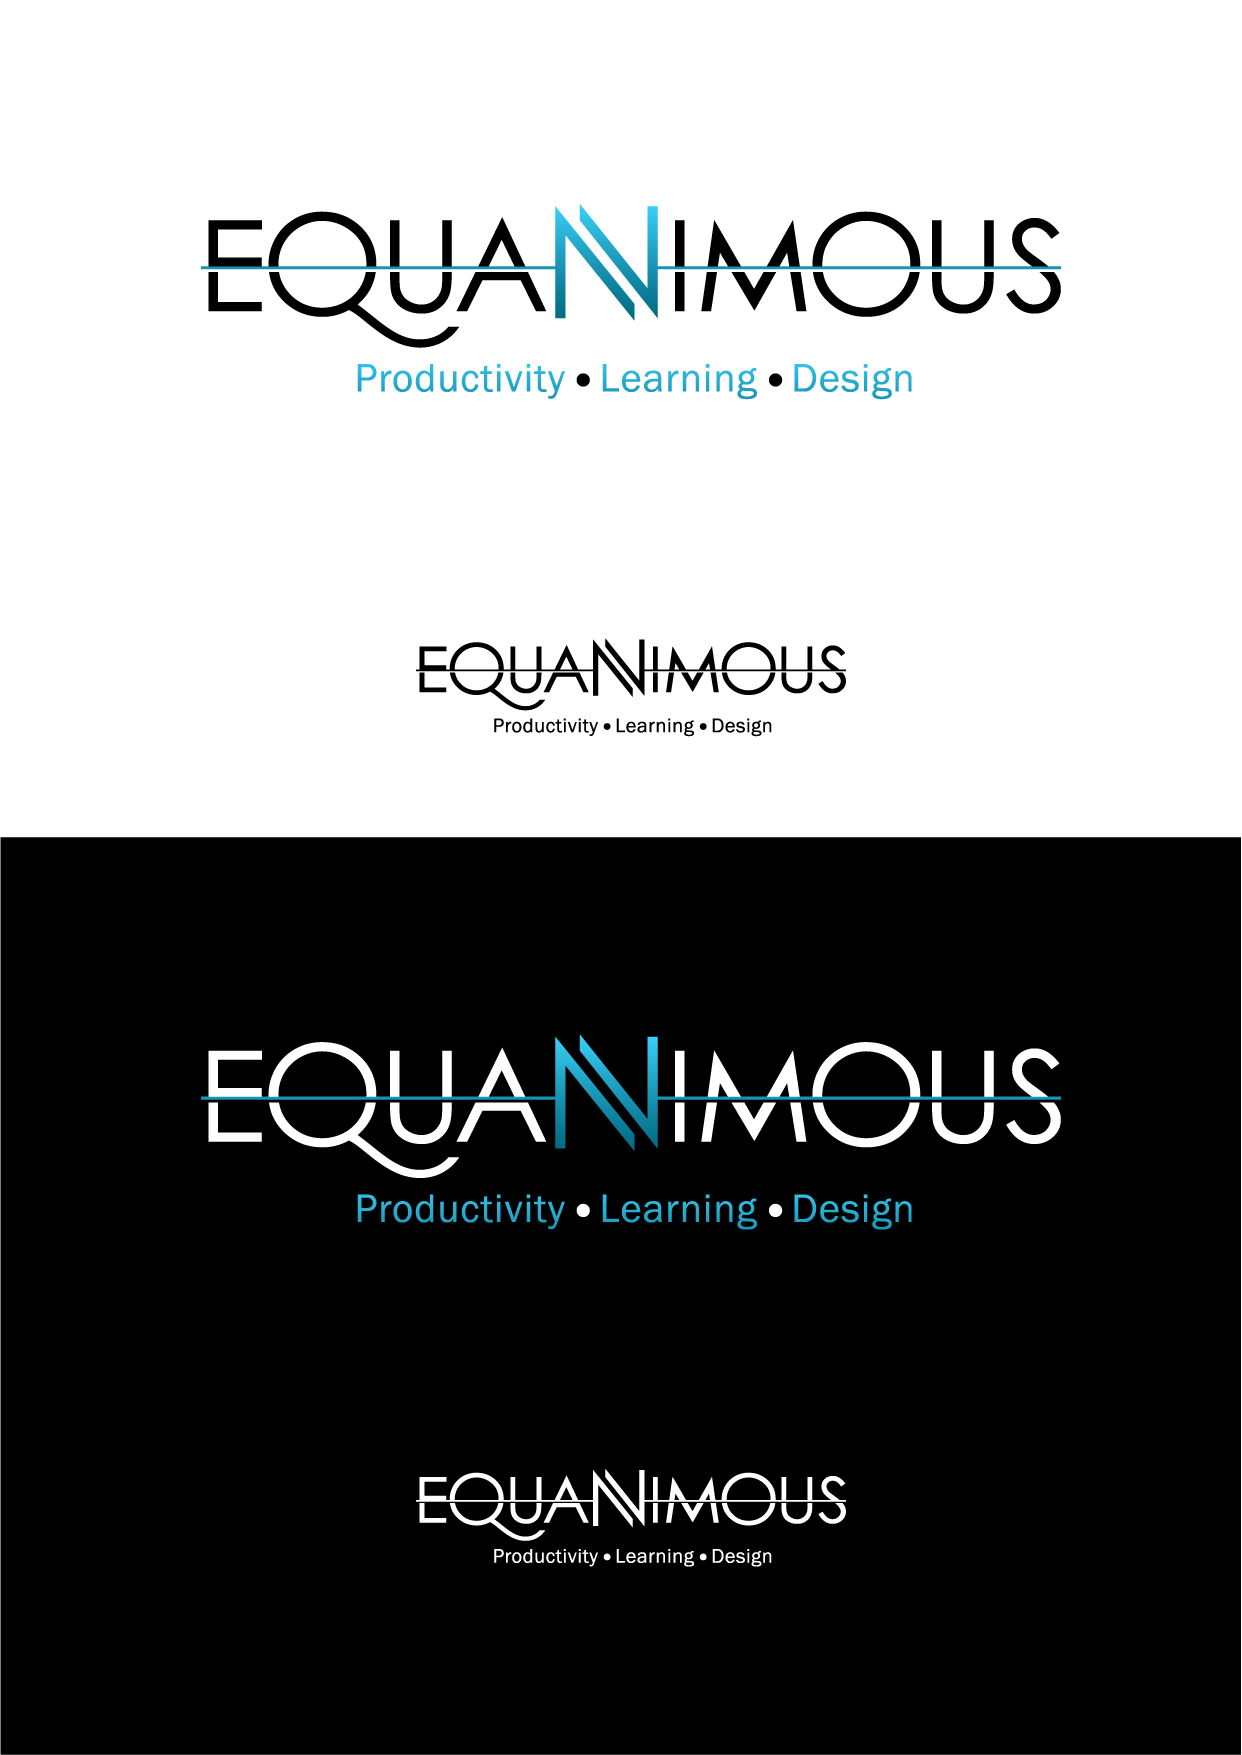 Logo Design by Wilfredo Mendoza - Entry No. 395 in the Logo Design Contest Logo Design : EQUANIMOUS : Productivity | Learning | Design.